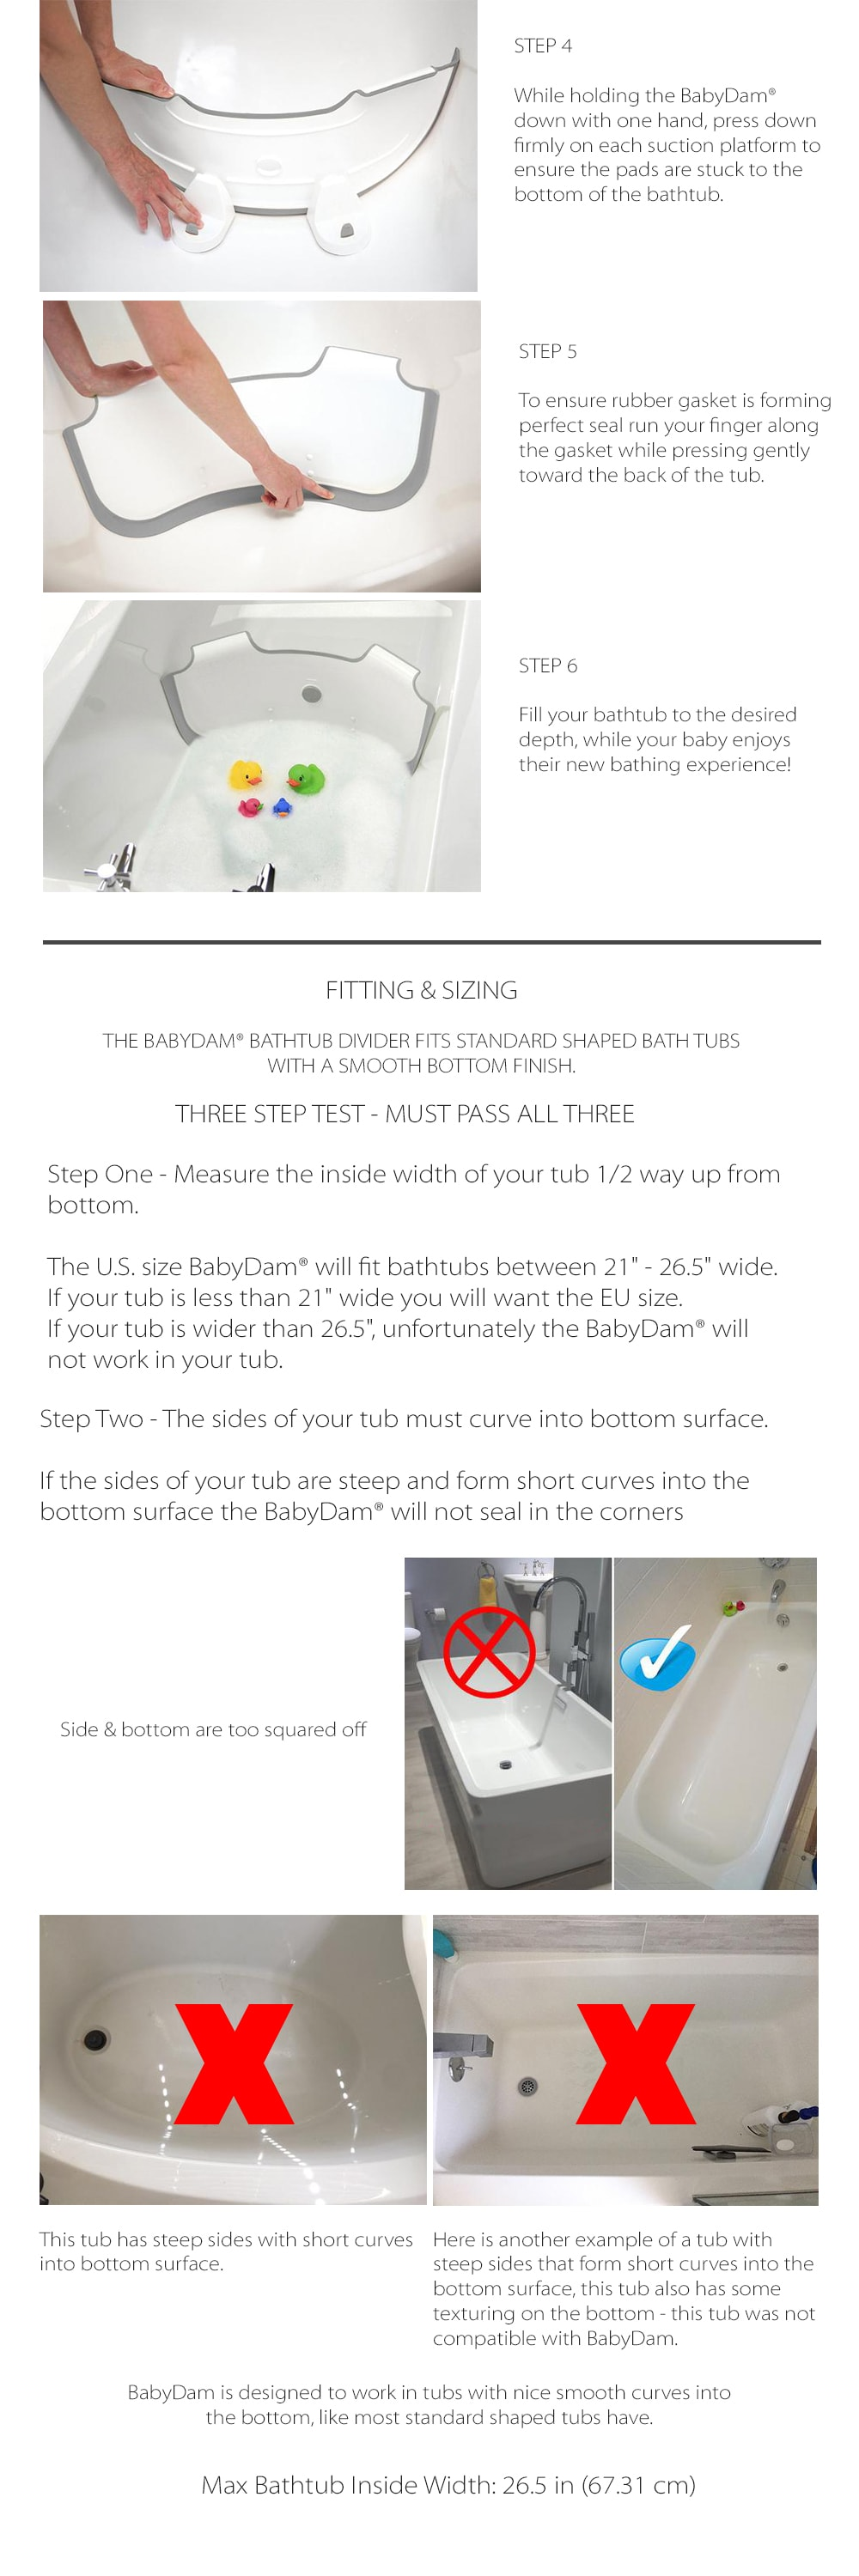 BabyDam Bathtub Divider Customize Your Bathtub